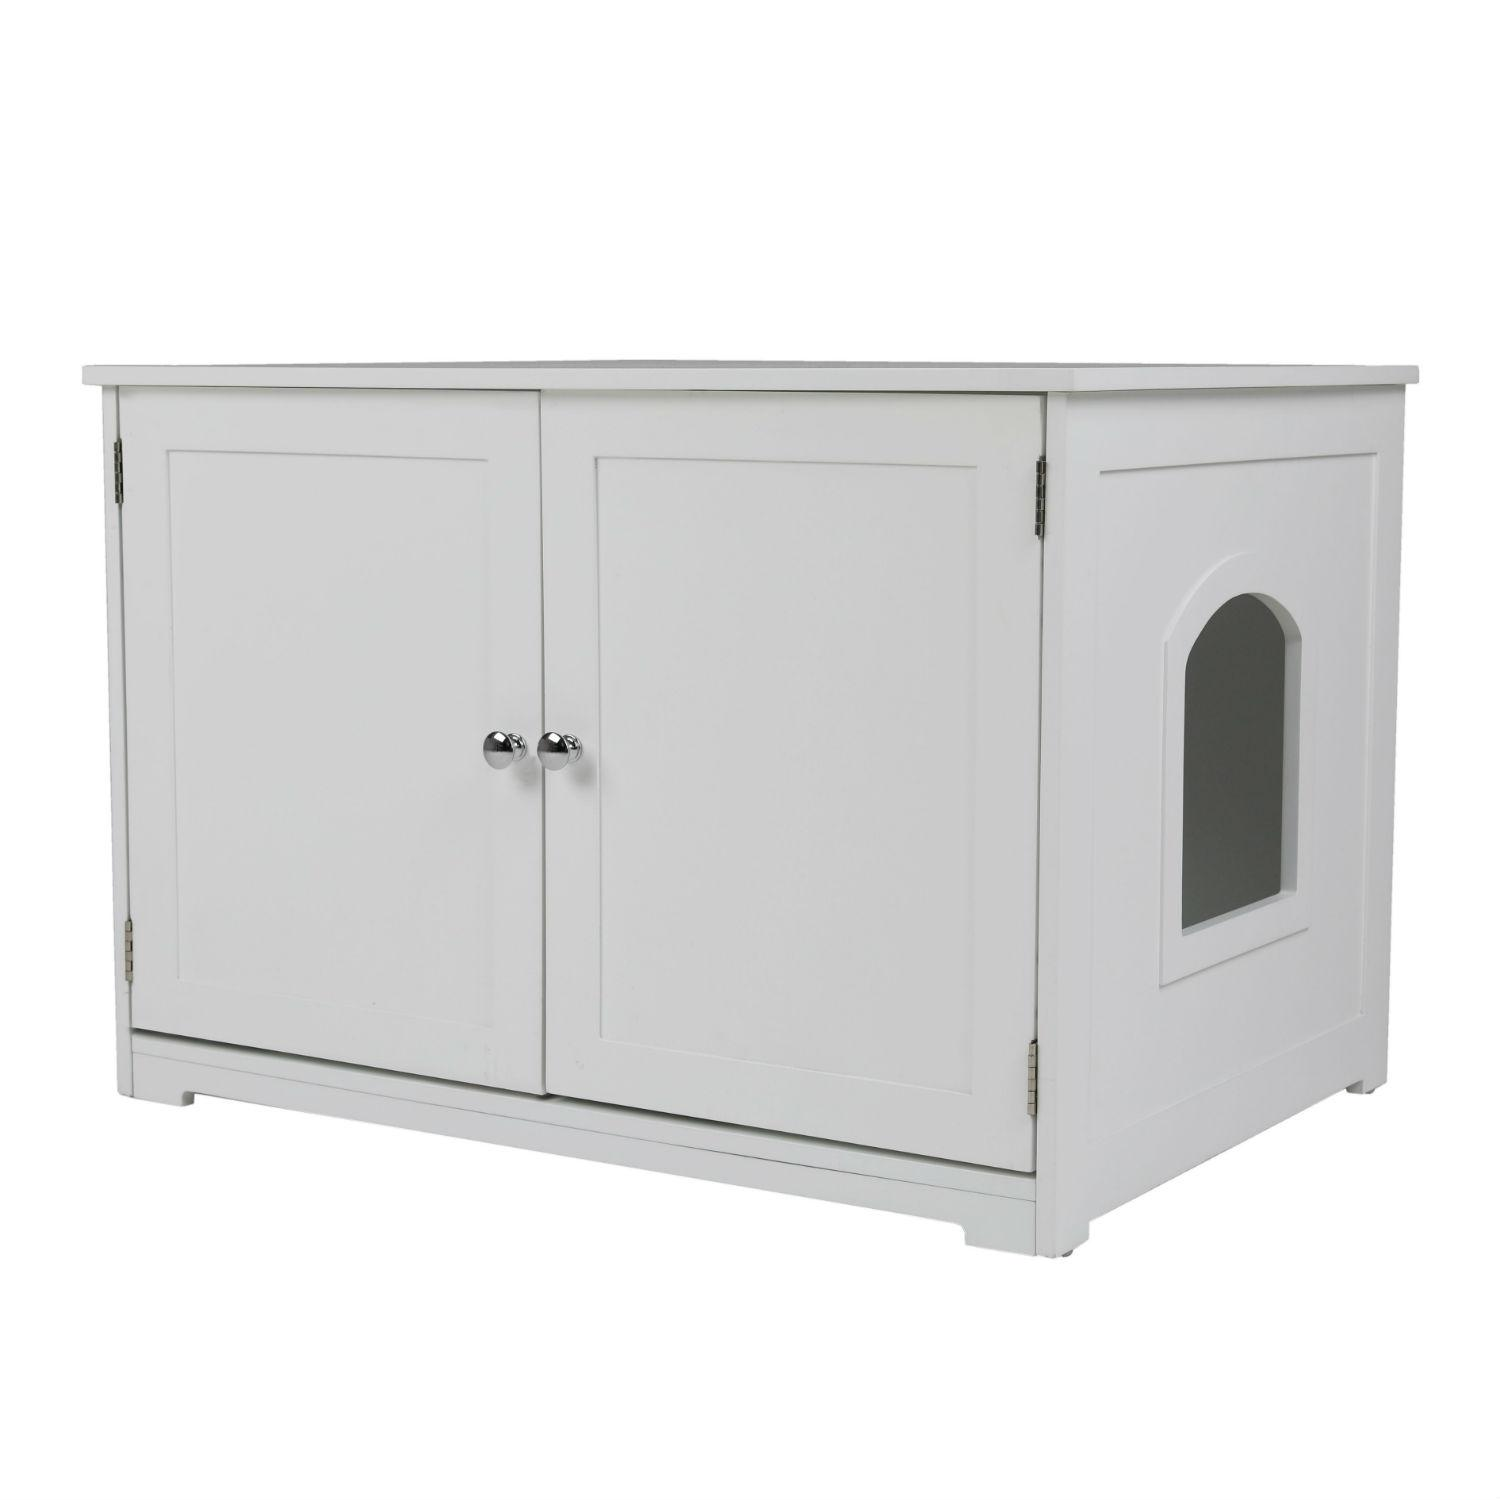 Merry Products Cat Litter Loo Bench Cat Box Enclosure - White